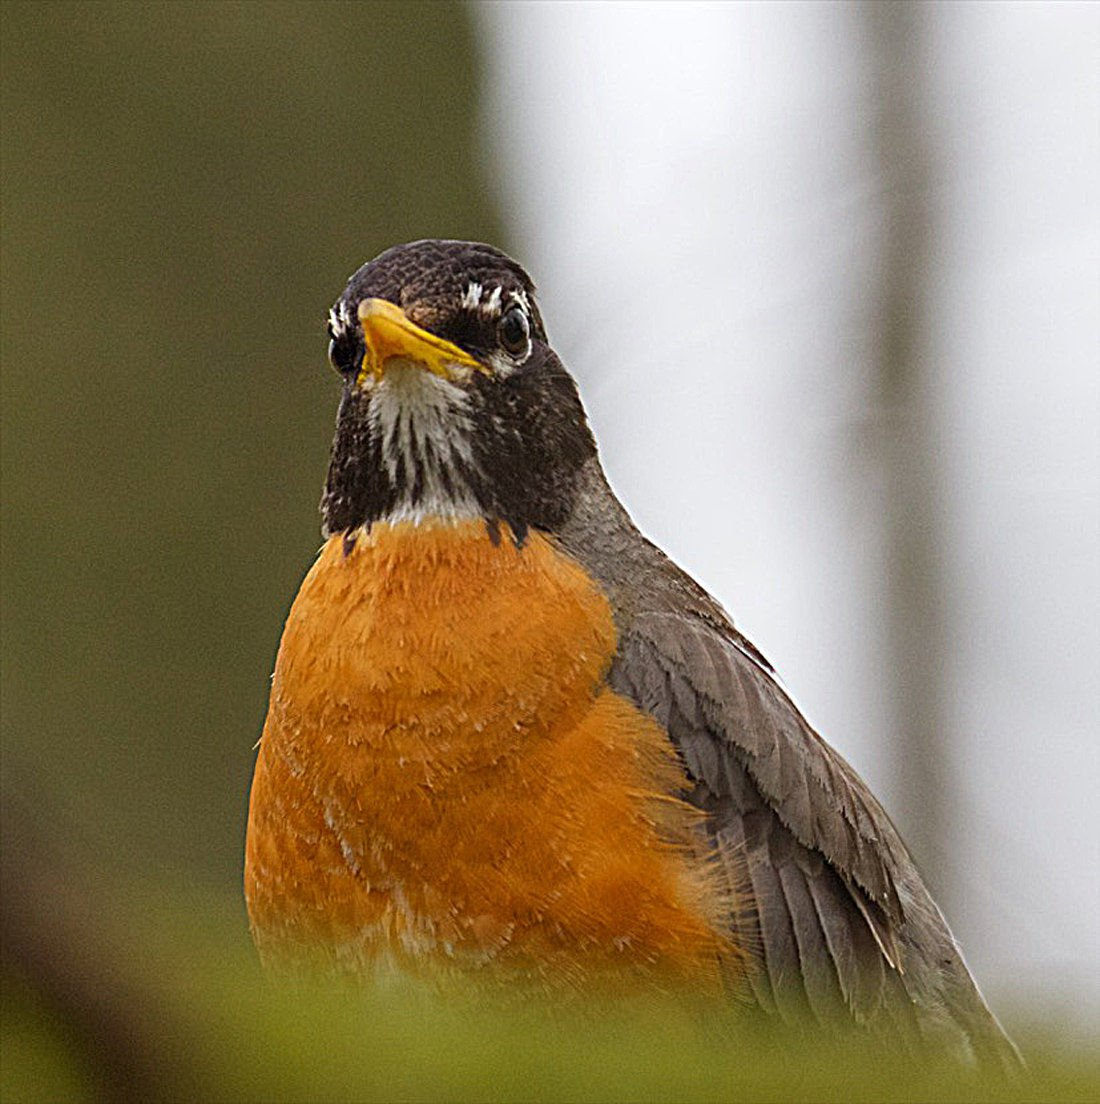 Birdwatching A most extraordinary species: The American robin